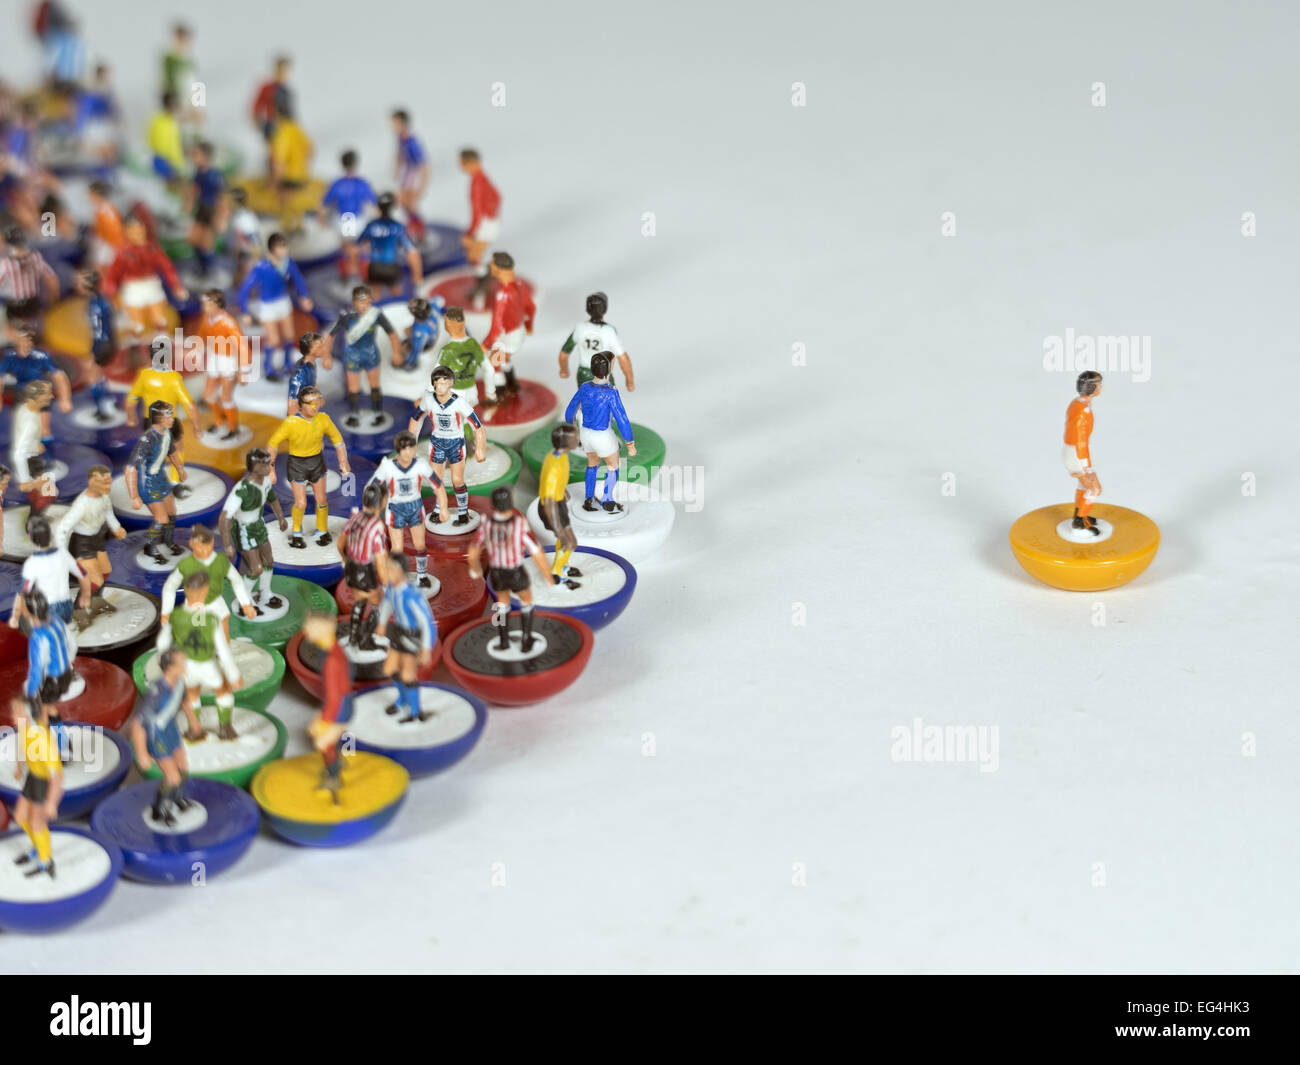 A mixture of individual subbuteo table football figures of different teams - Stock Image